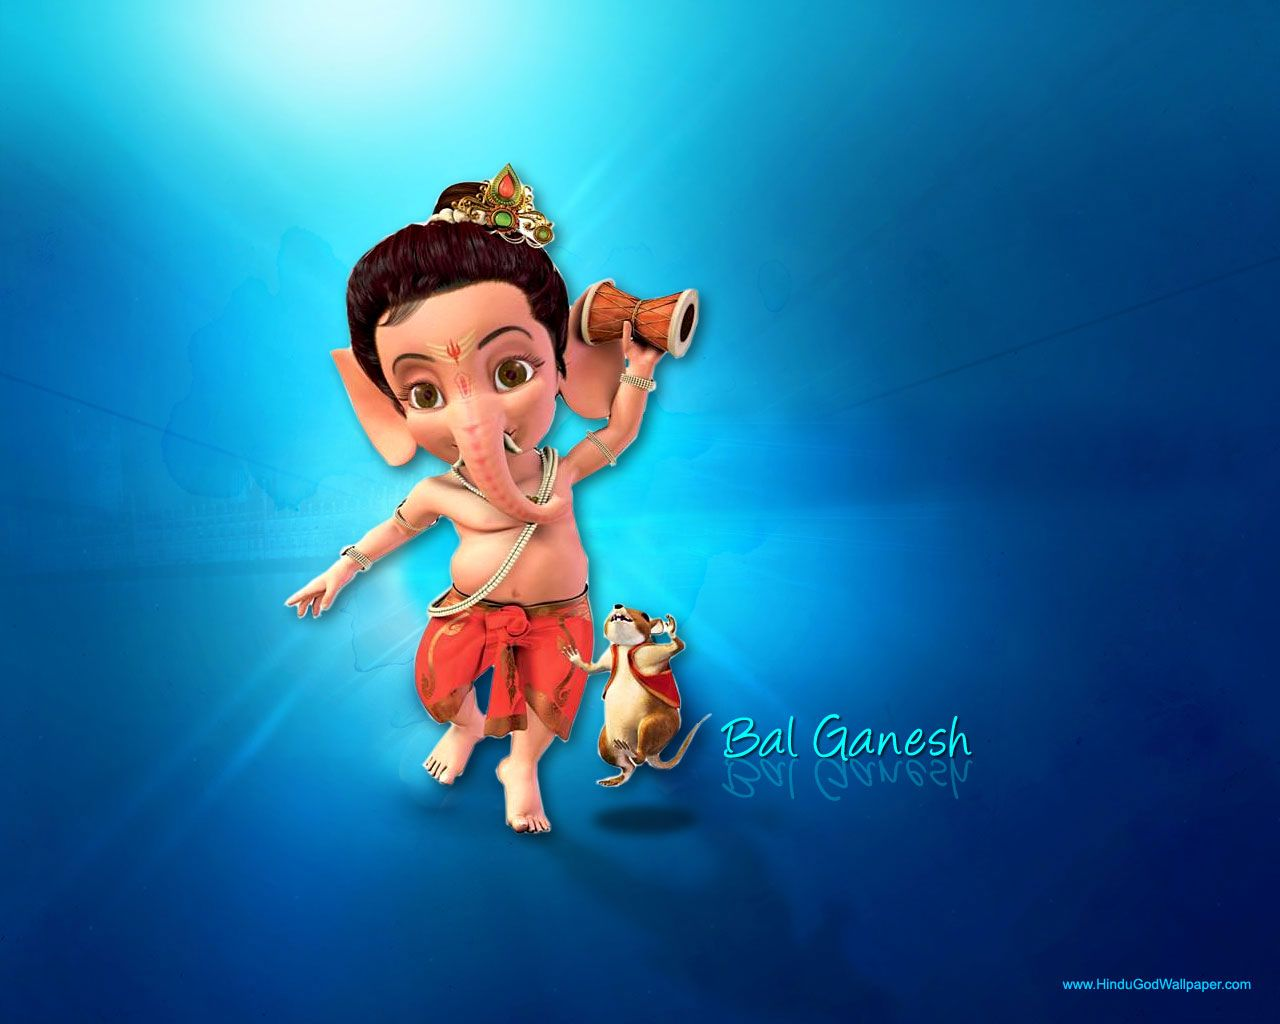 Hd wallpaper ganesh - Bal Ganesha Hd Wallpapers Download